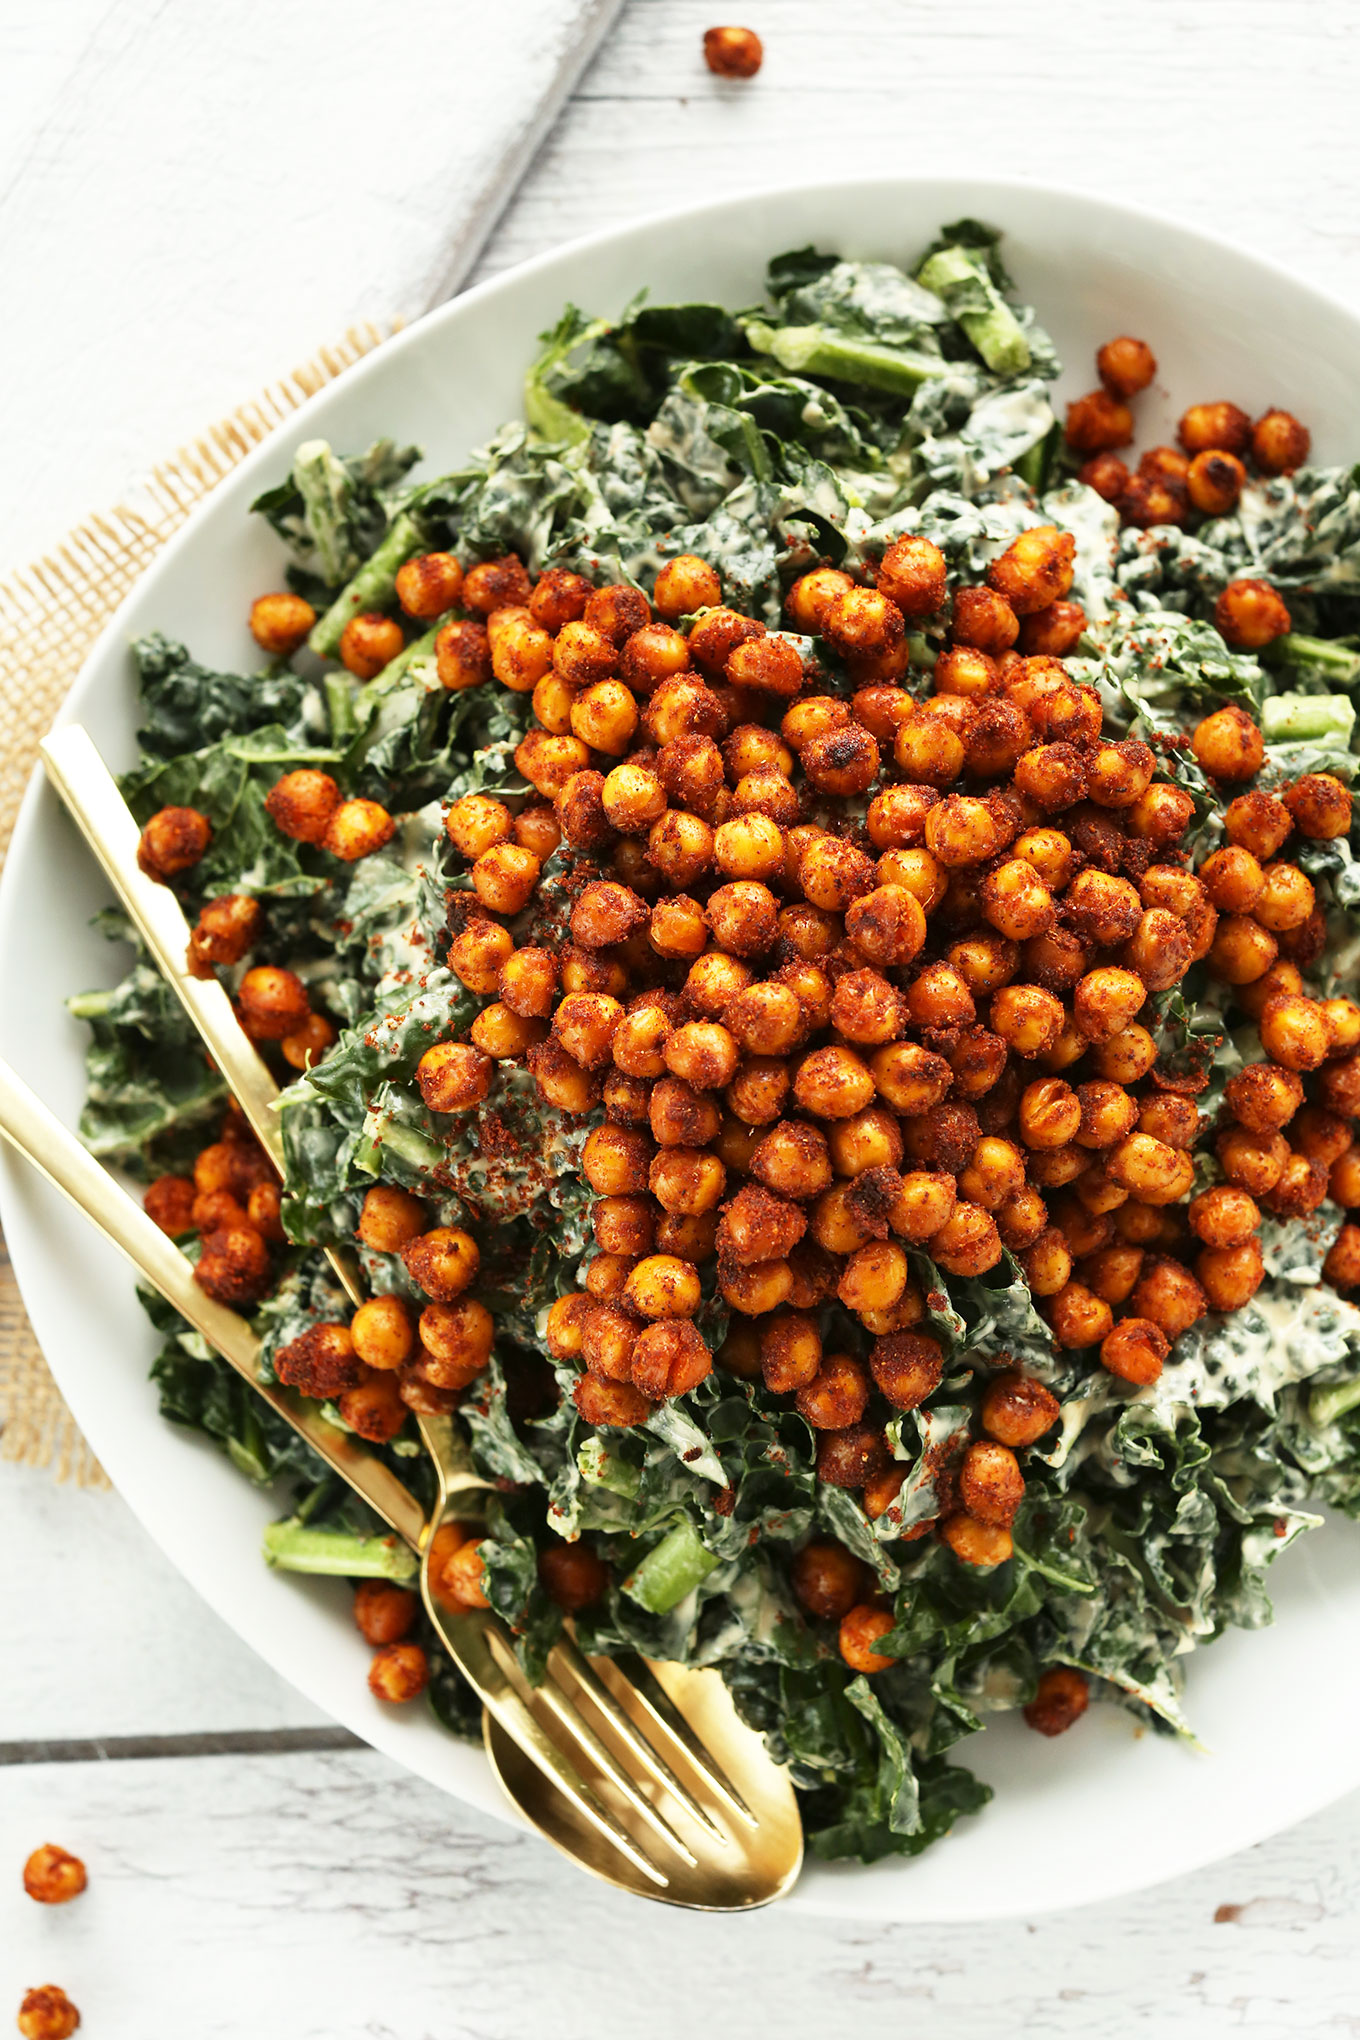 Big serving of our recipe for Garlicky Kale Salad with Tandoori Spiced Chickpeas